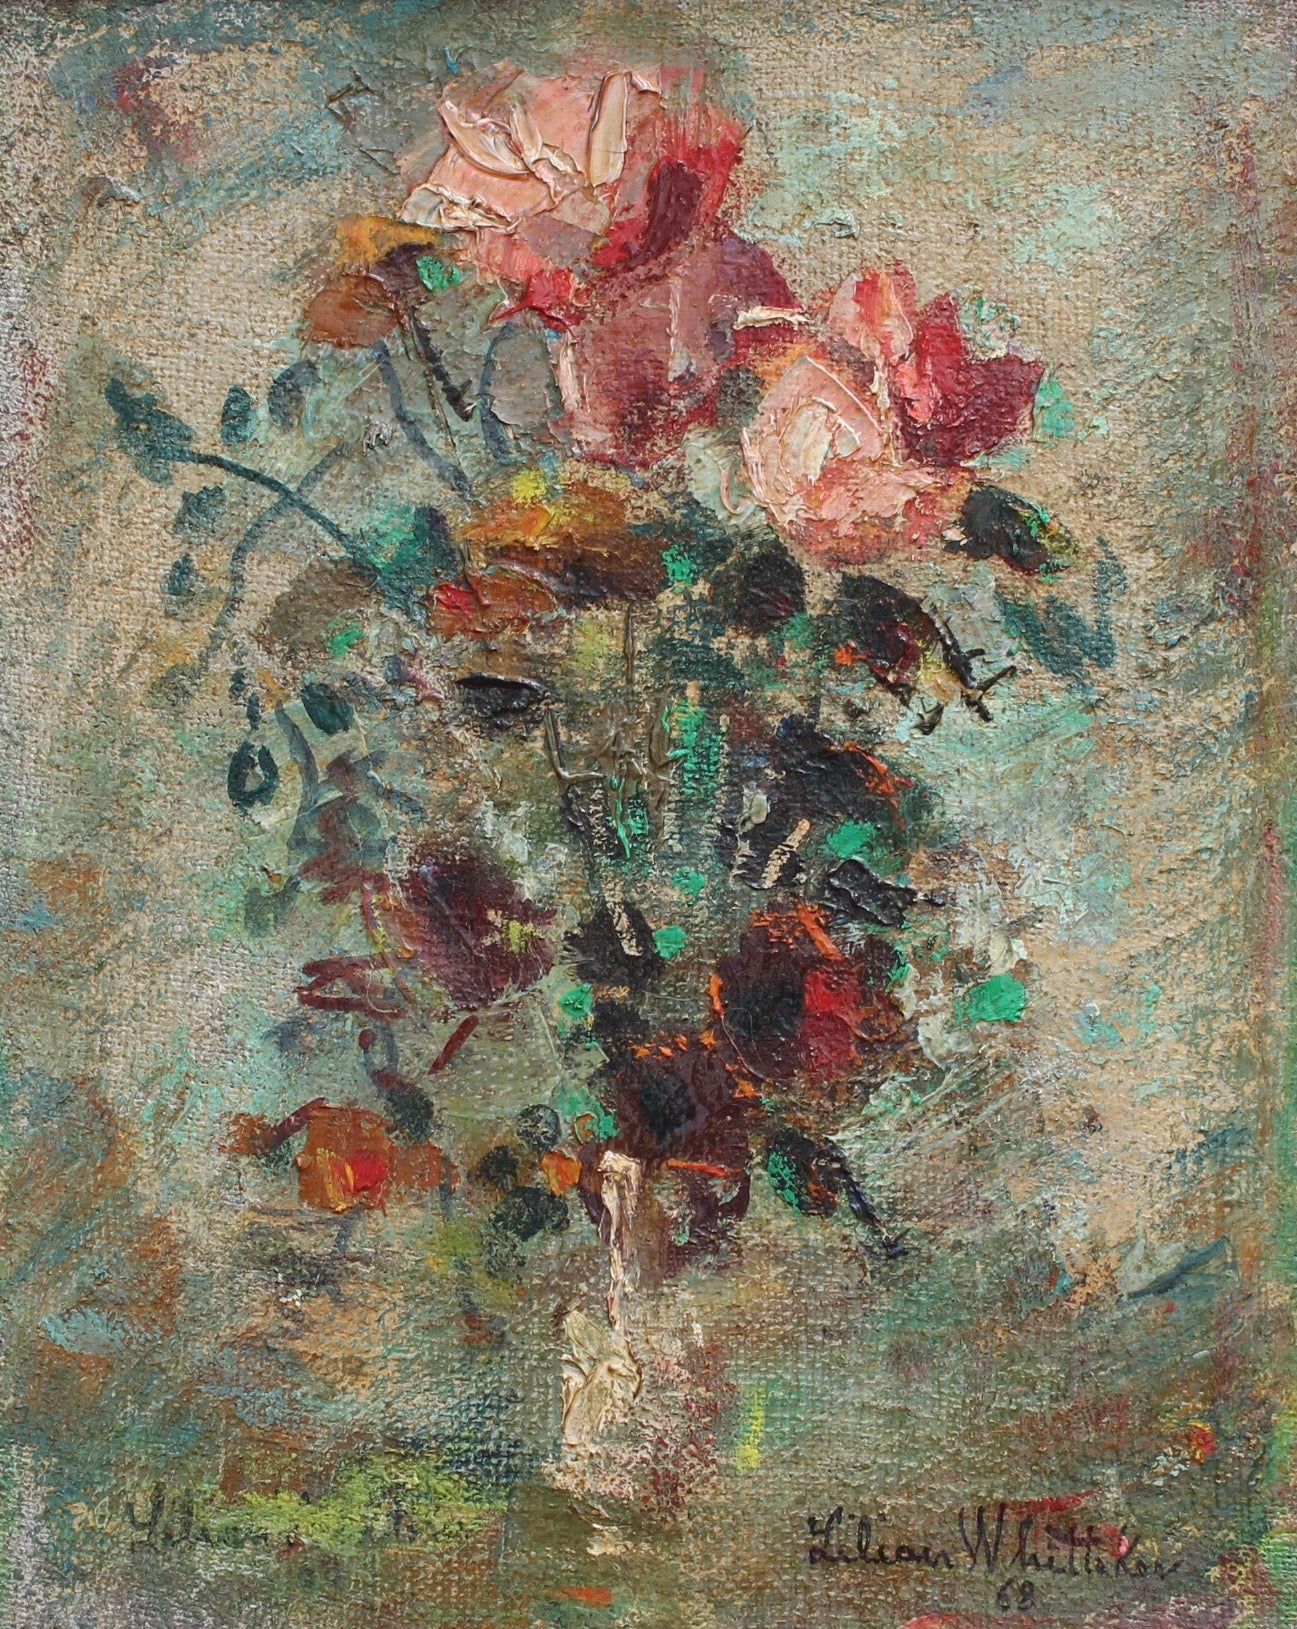 'Flower Arrangement in Vase' by Lilian E. Whitteker (1968)